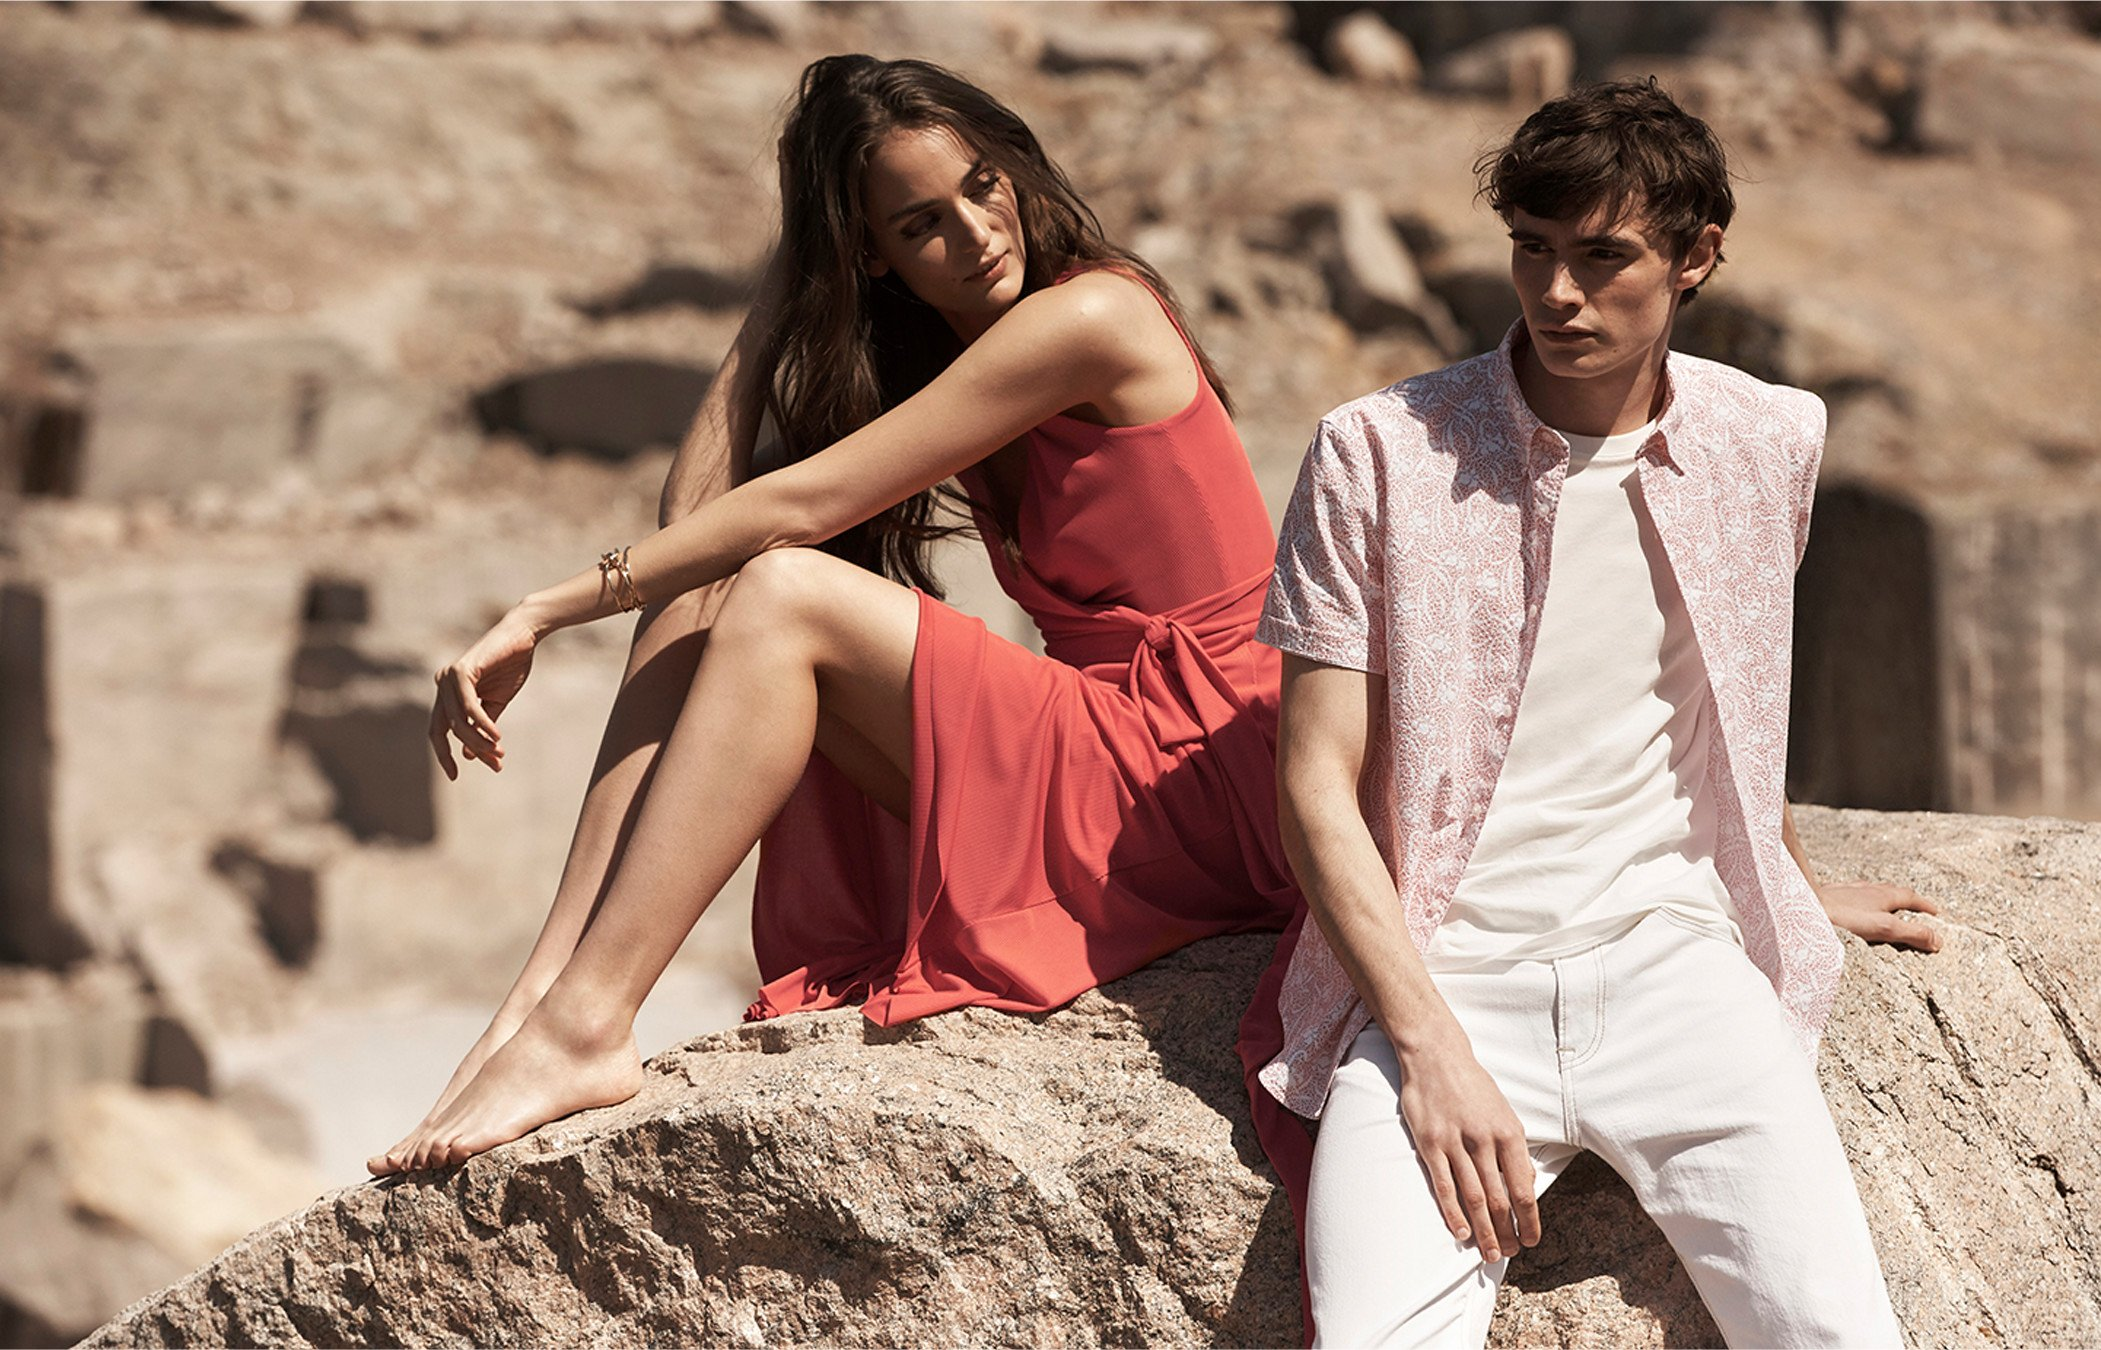 A man and a woman in lightweight summer clothing sit outside in the sun.